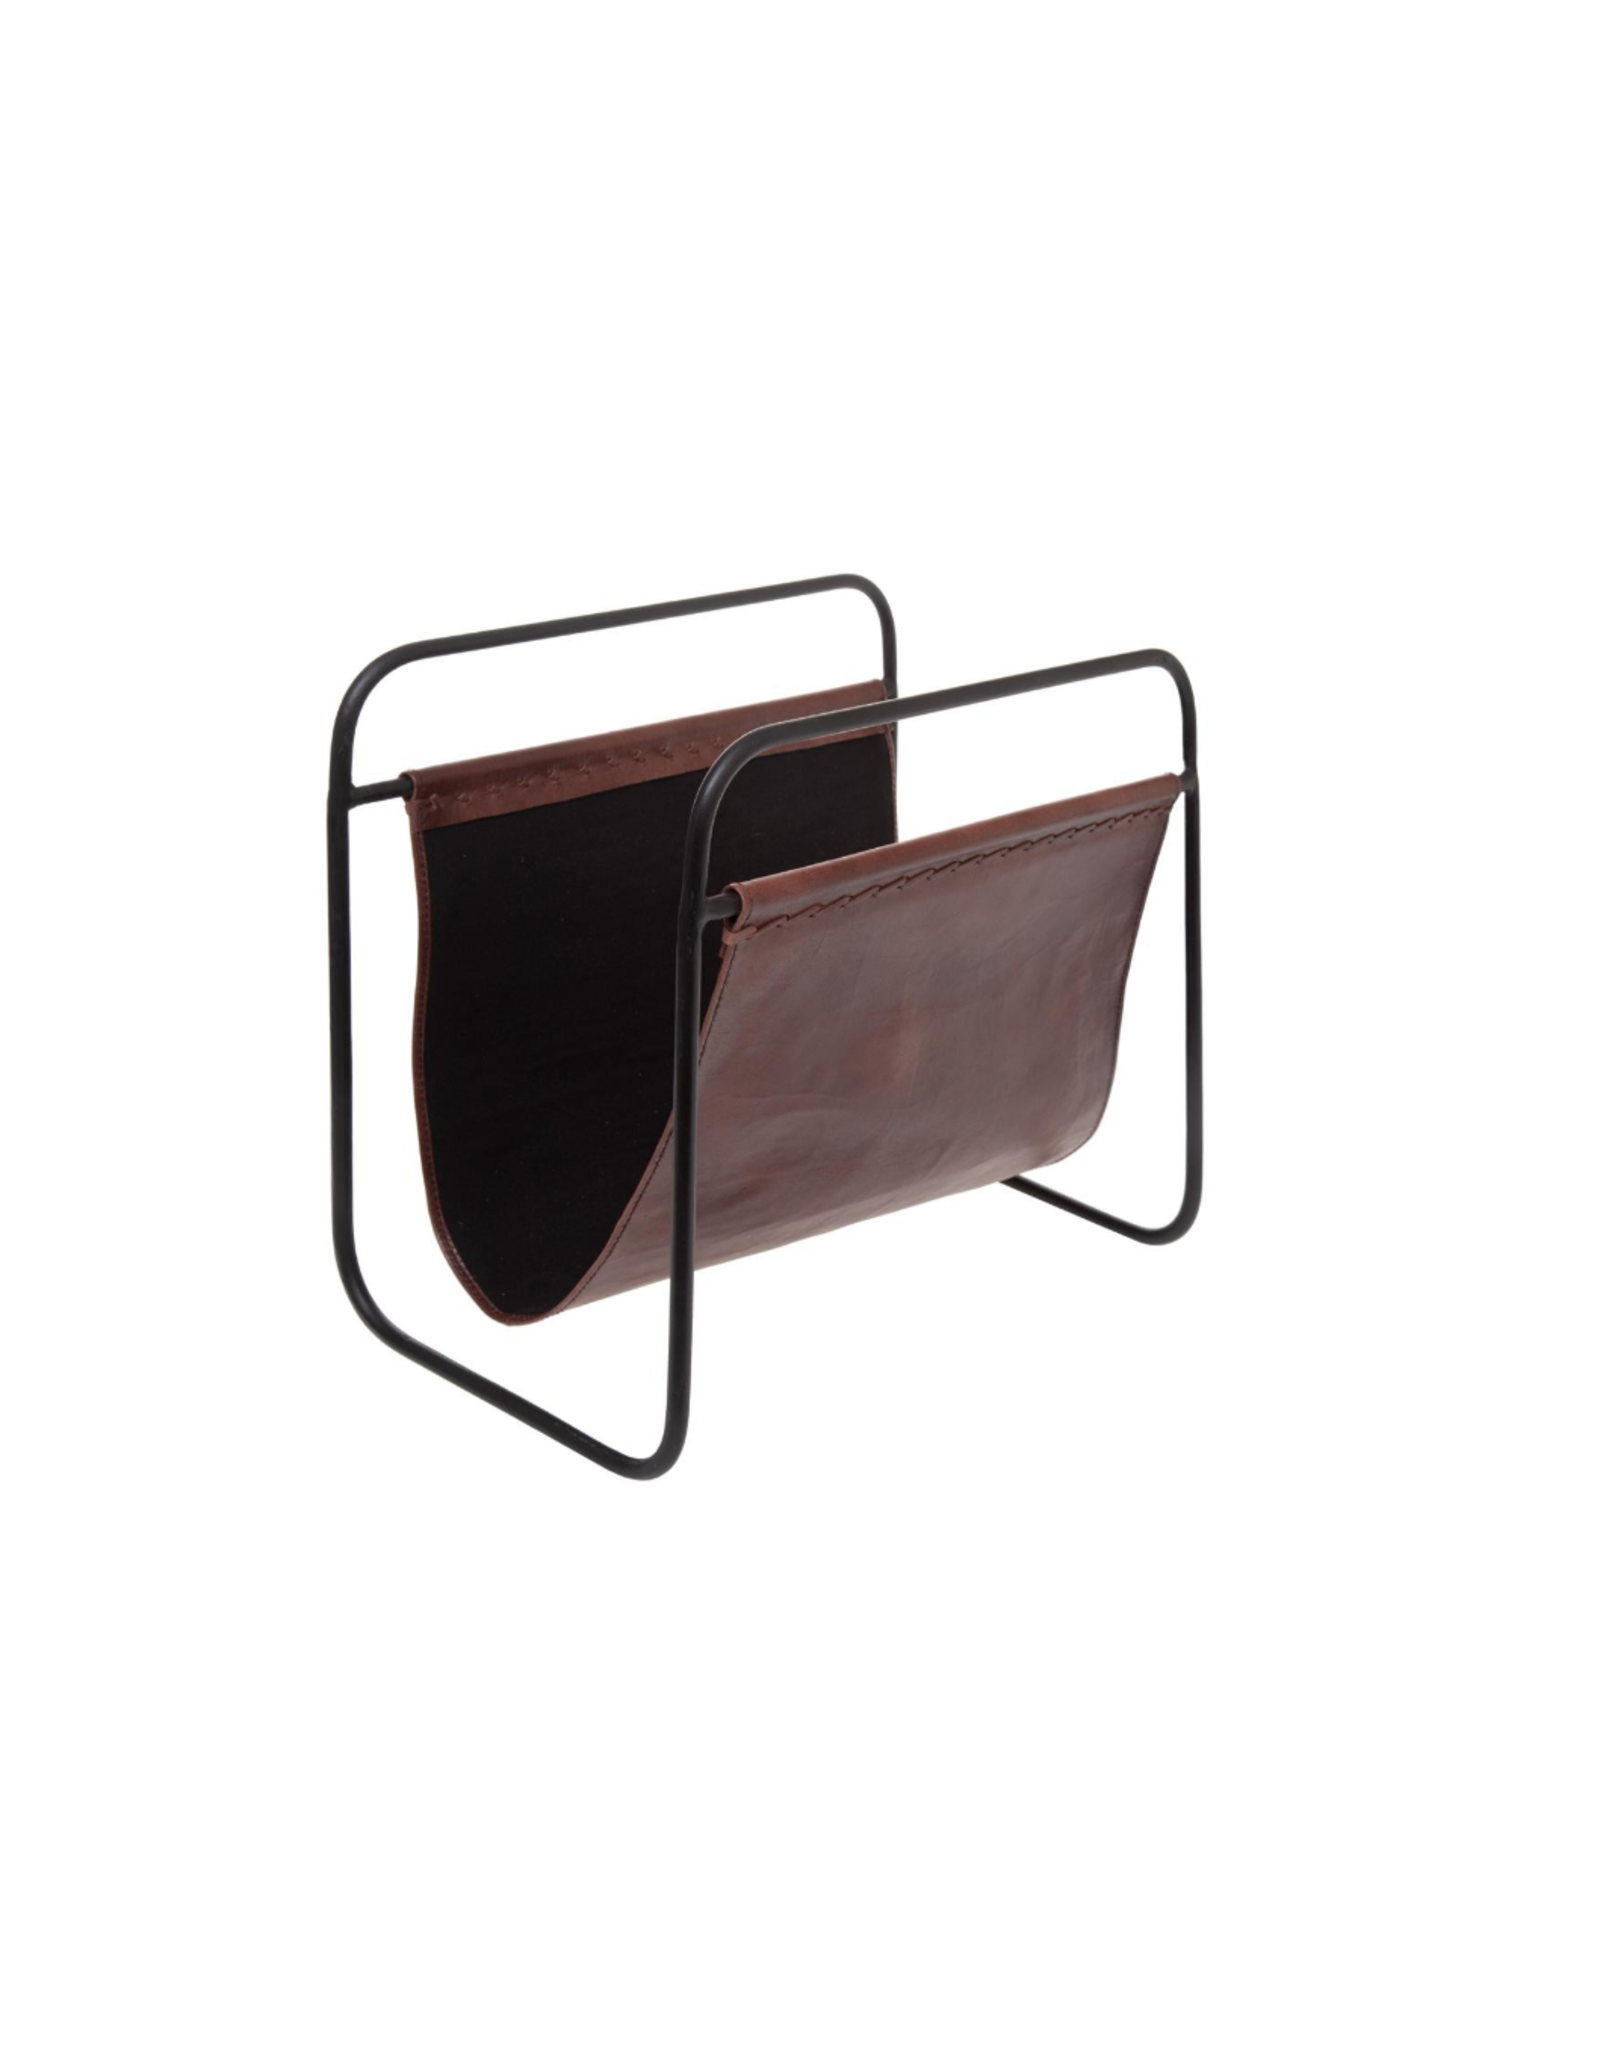 LOFT030 LEATHER MAGAZINE HOLDER